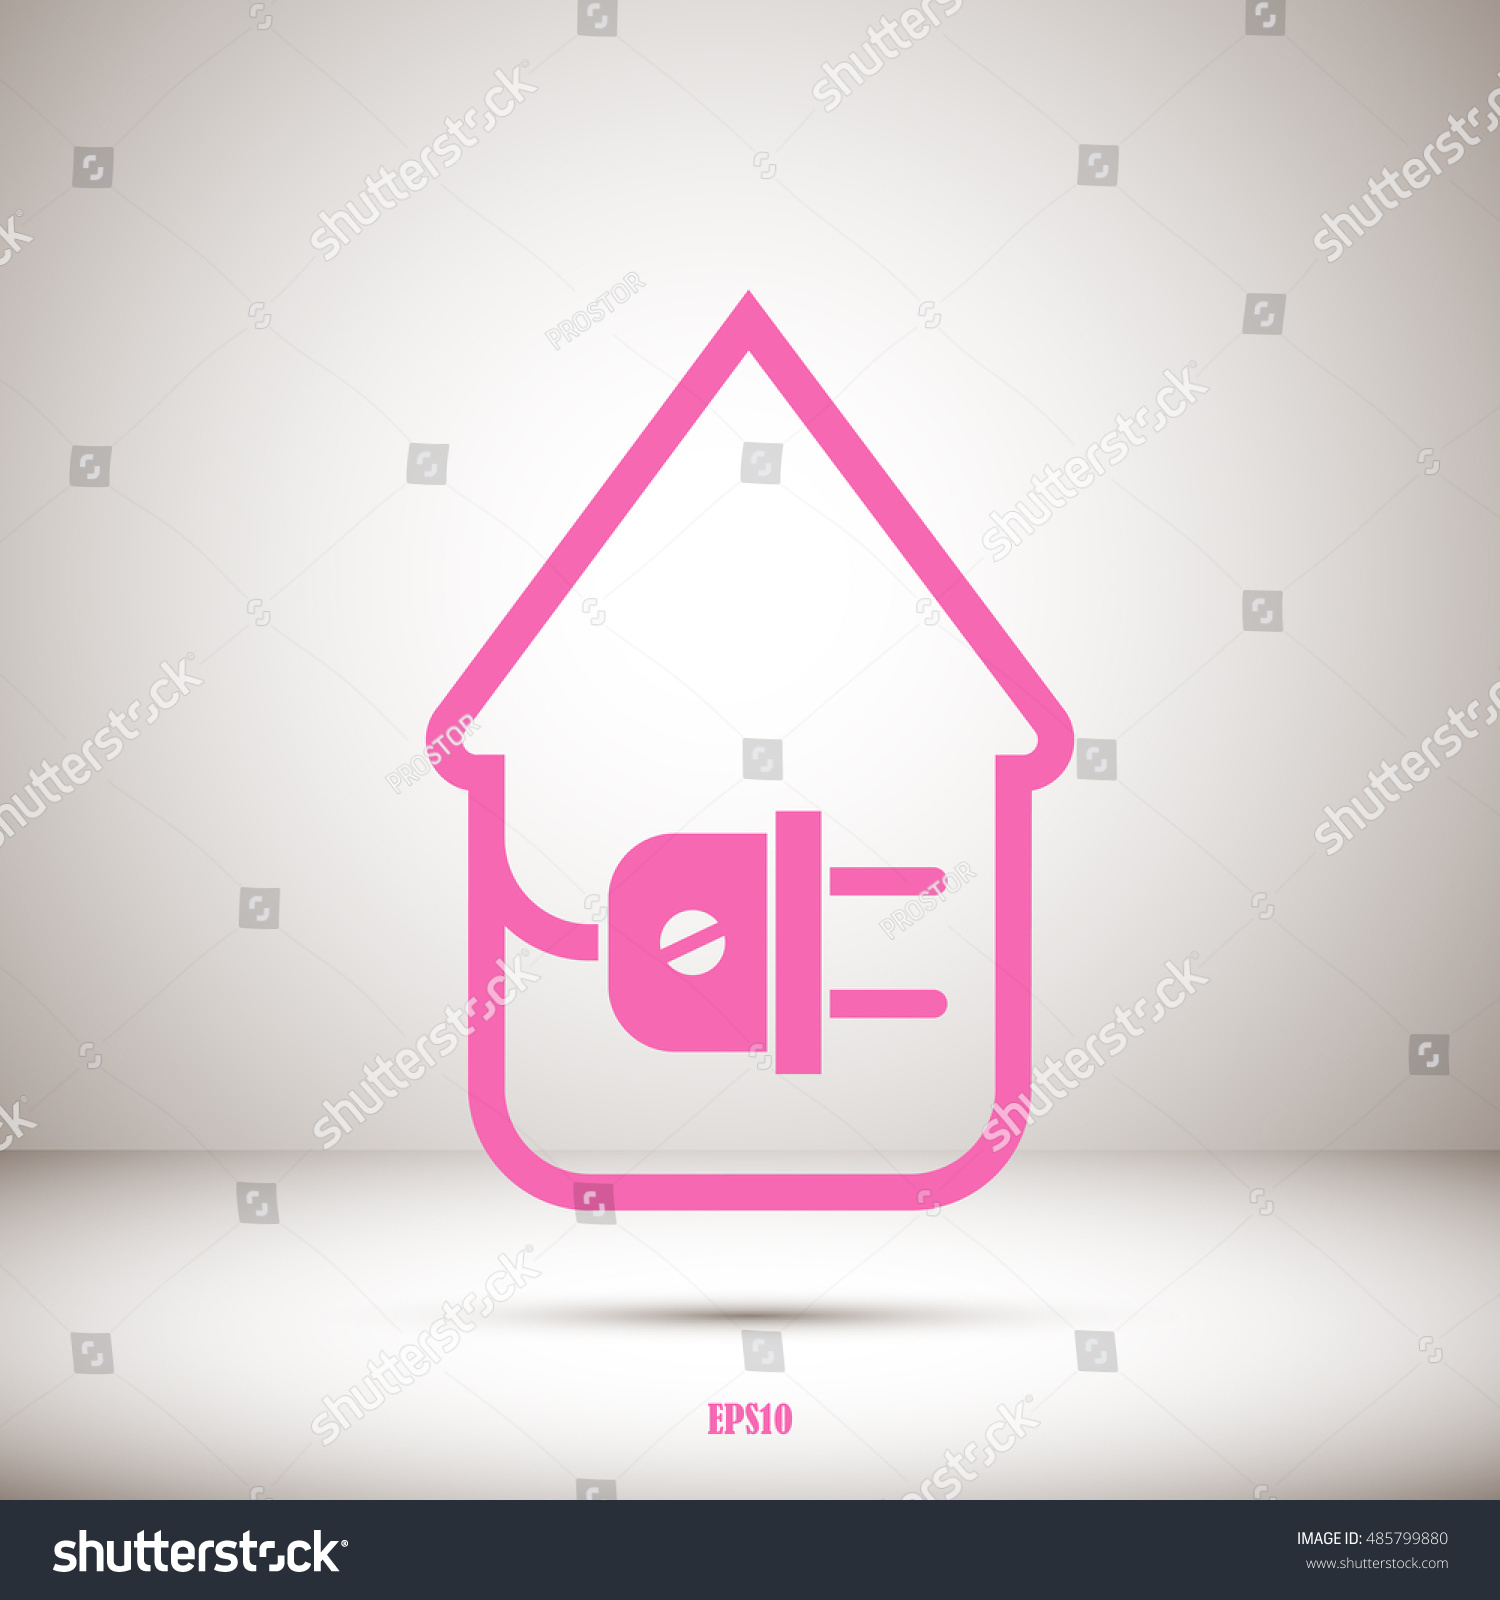 Electric Wire Plug Showing House Stock Vector 485799880 - Shutterstock